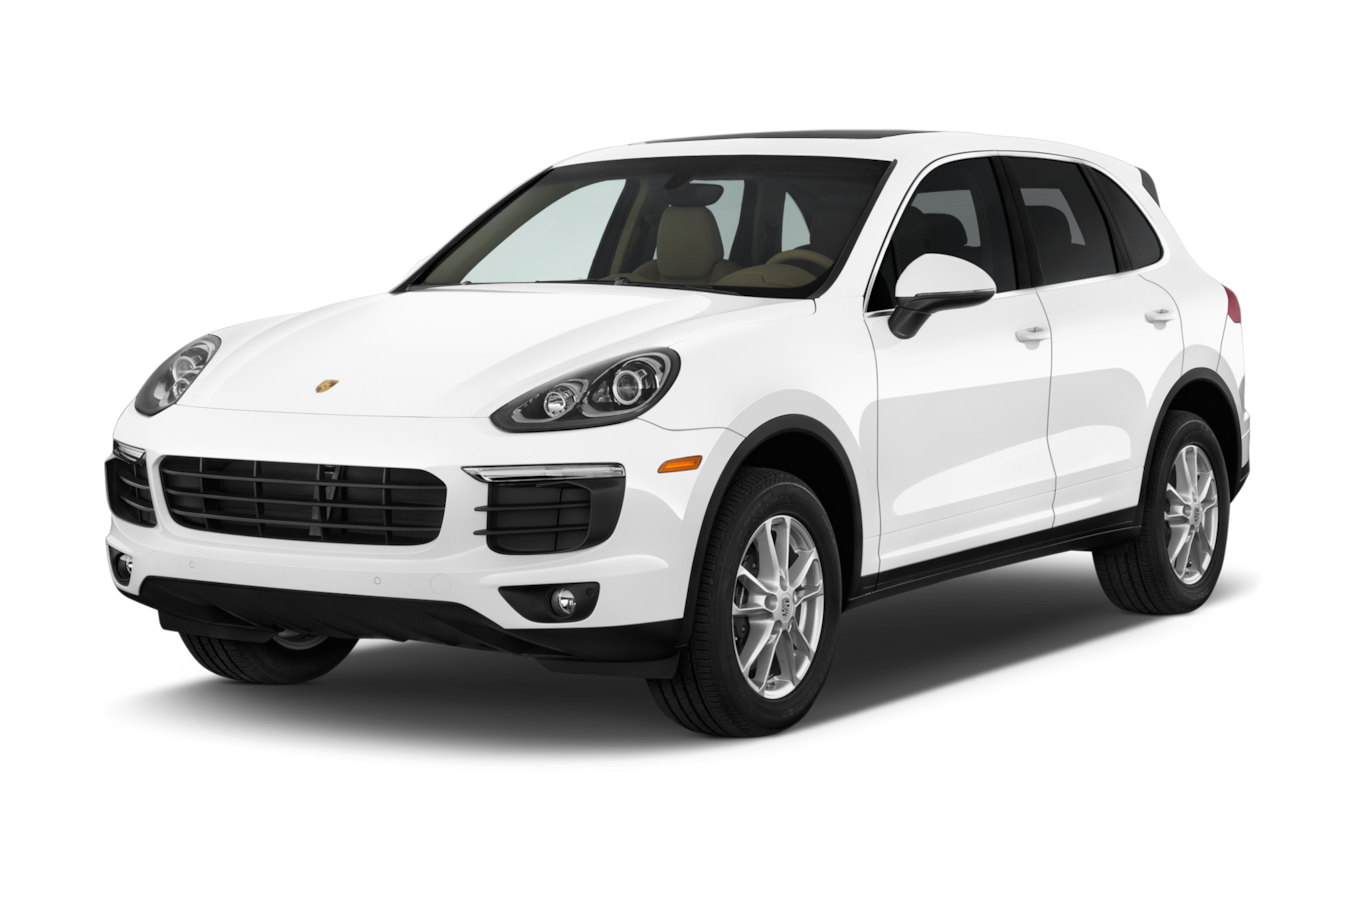 11 The Porsche Cayenne Model Exterior and Interior